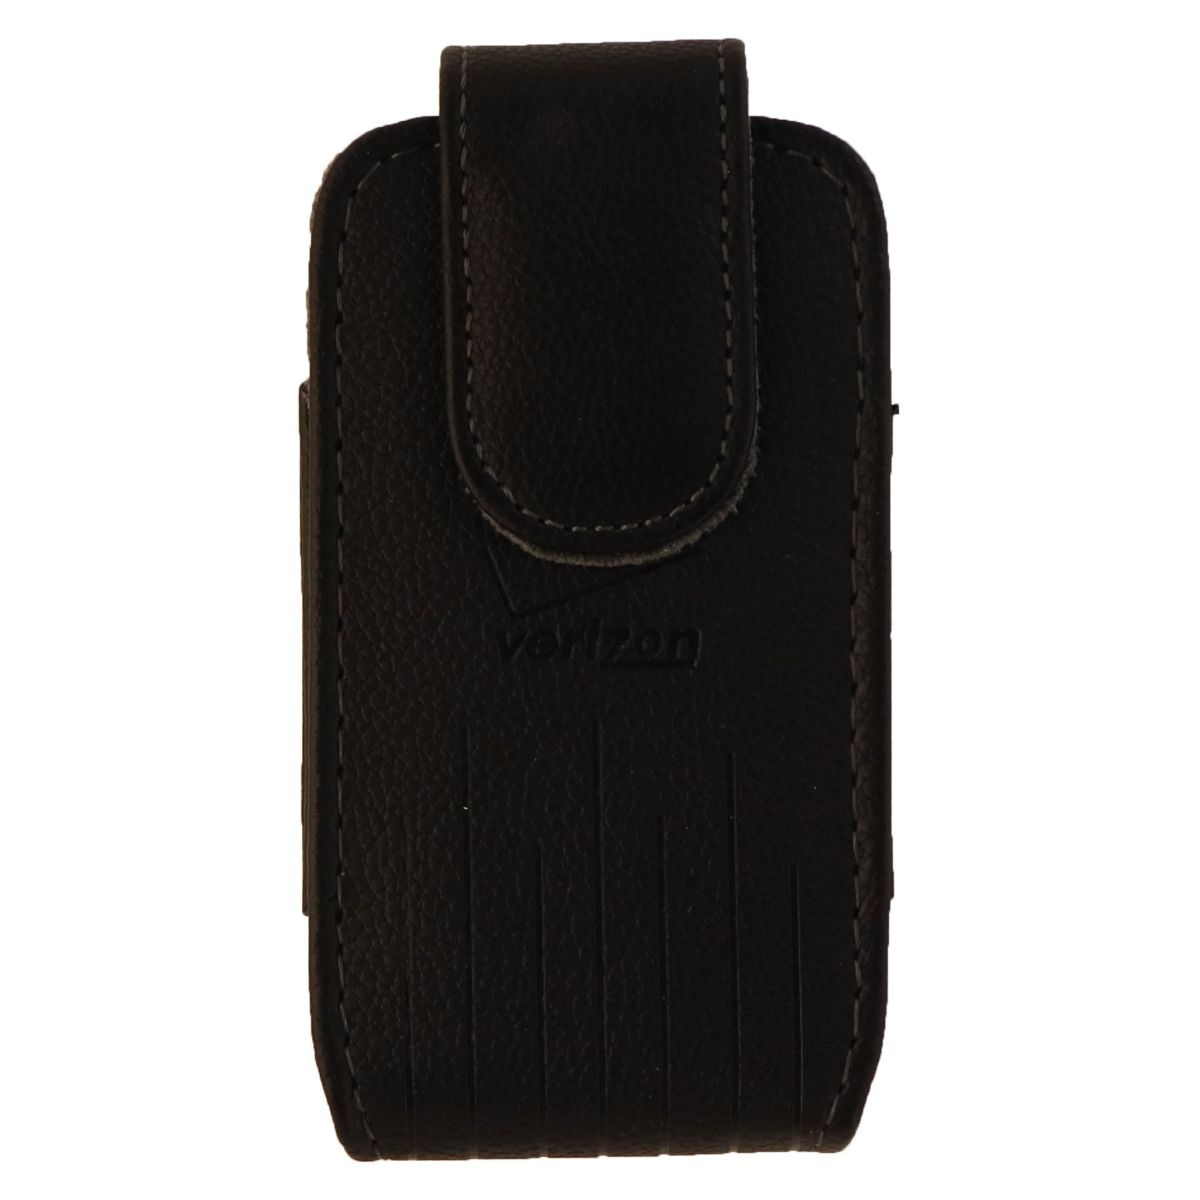 Verizon Universal Leather Standing Pouch for Small Devices - Black (UNIUPPCH3)